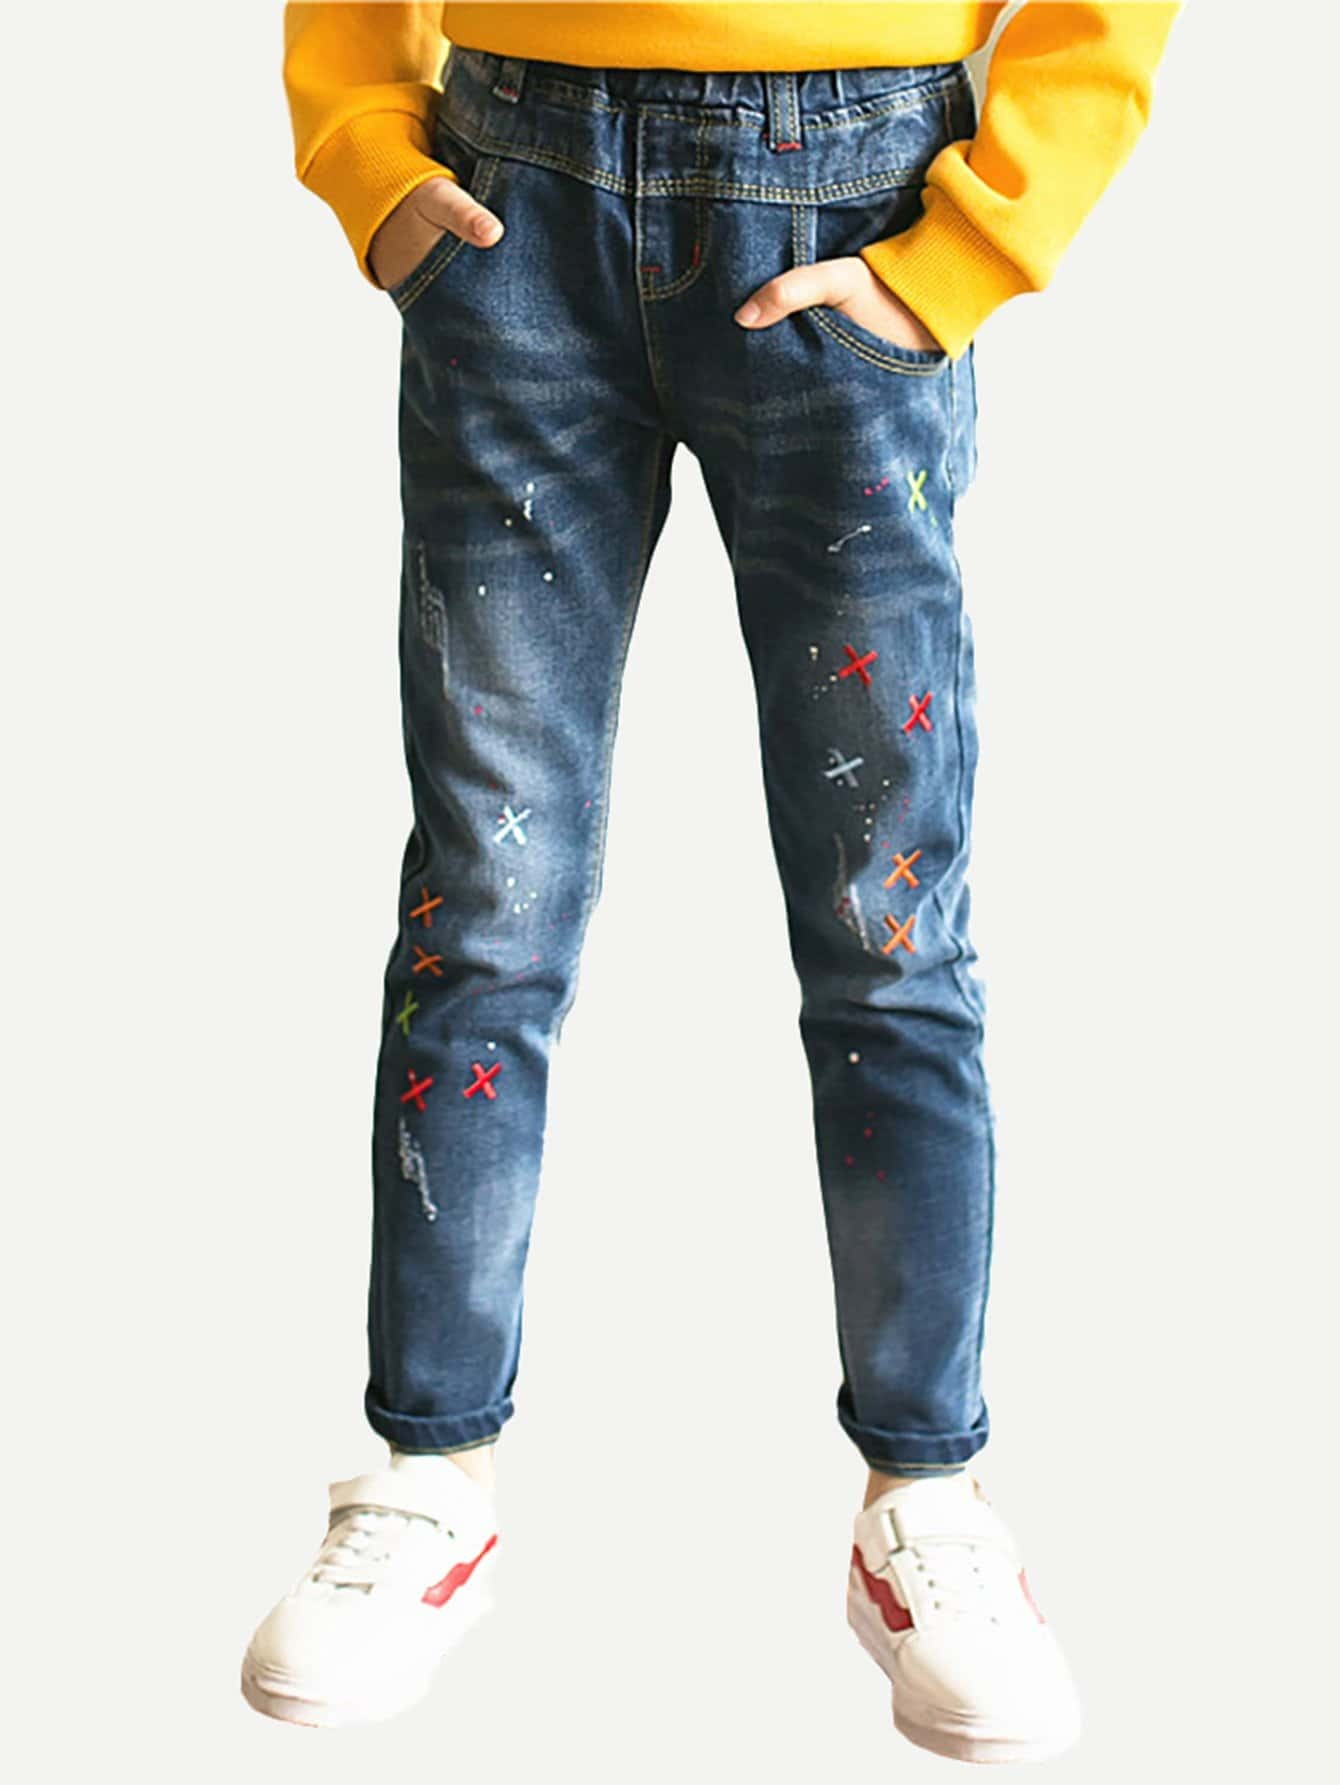 Girls Embroidered Jeans kids embroidered jeans